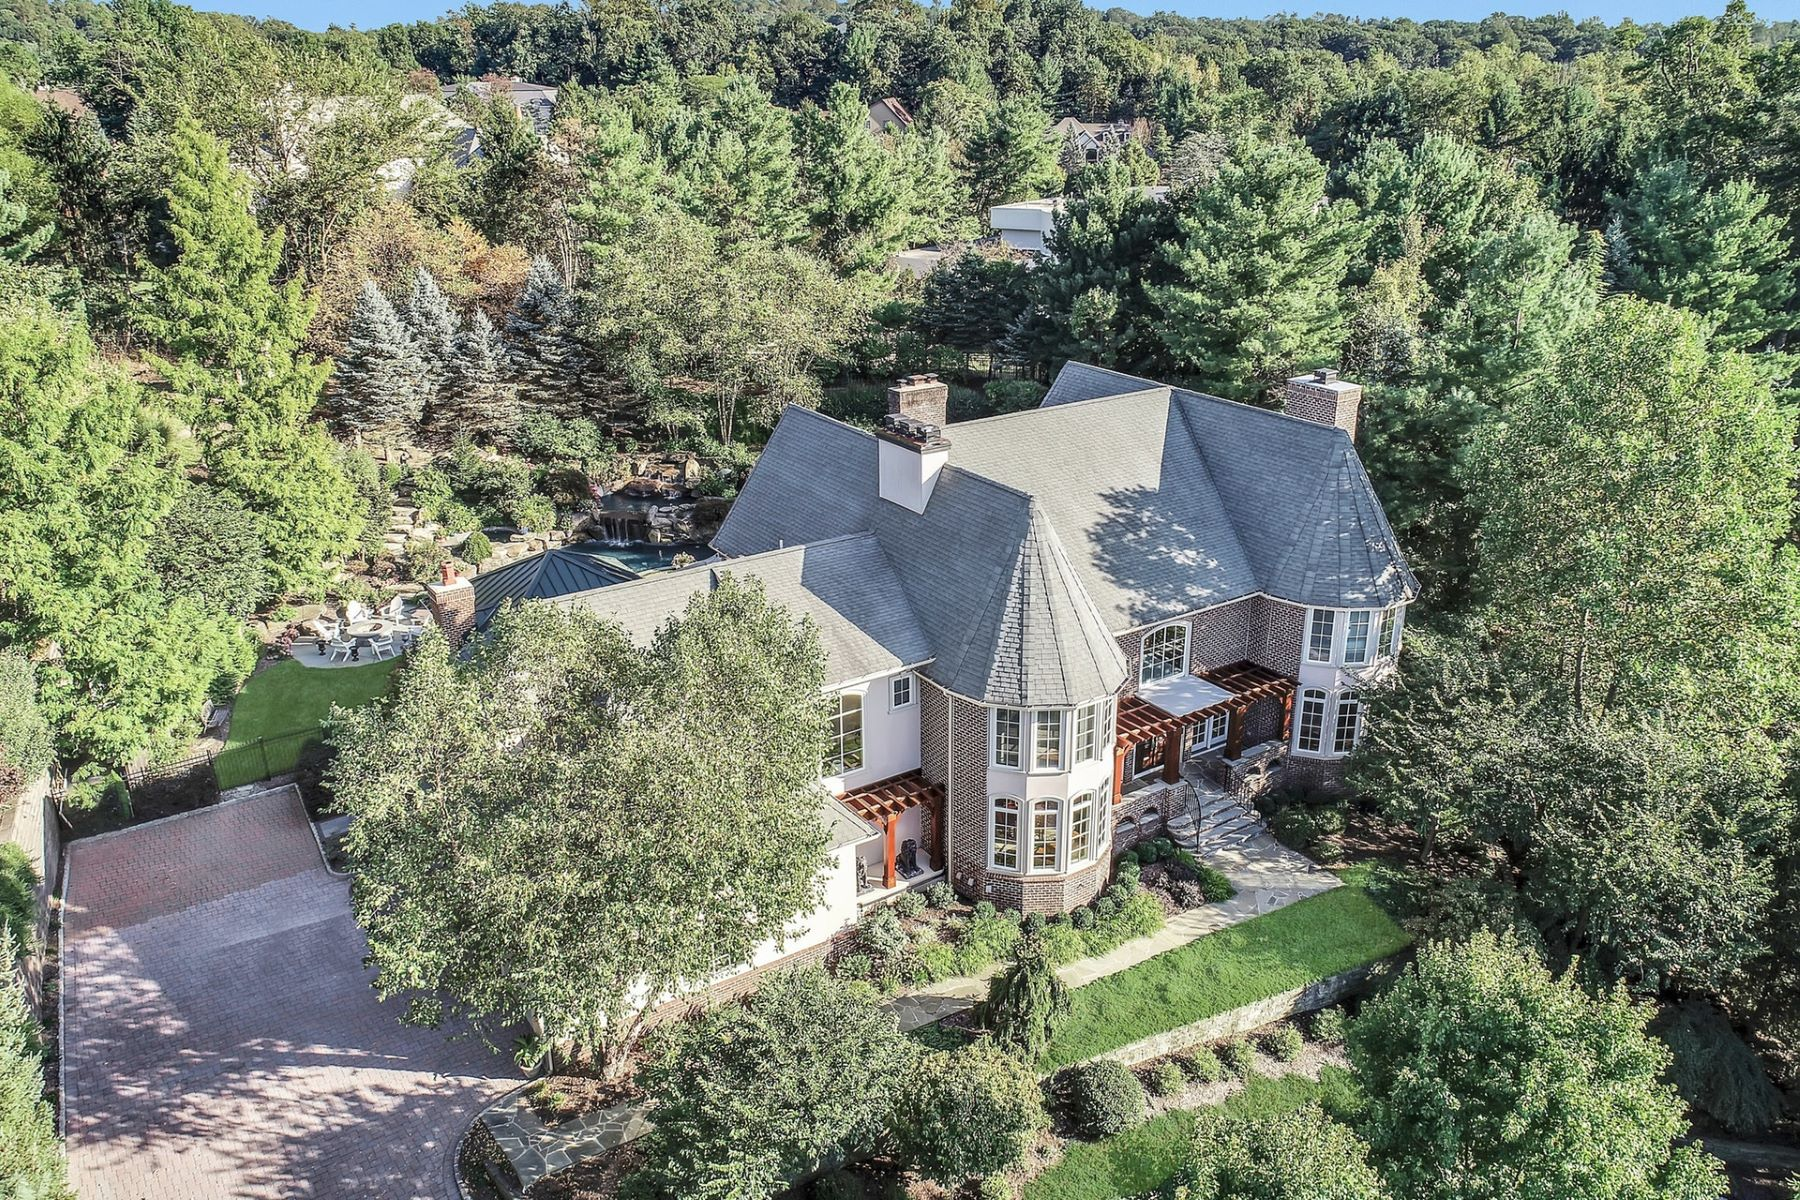 Single Family Homes for Active at Chestnut Hill Masterpiece 11 Notch Hill Drive Livingston, New Jersey 07039 United States